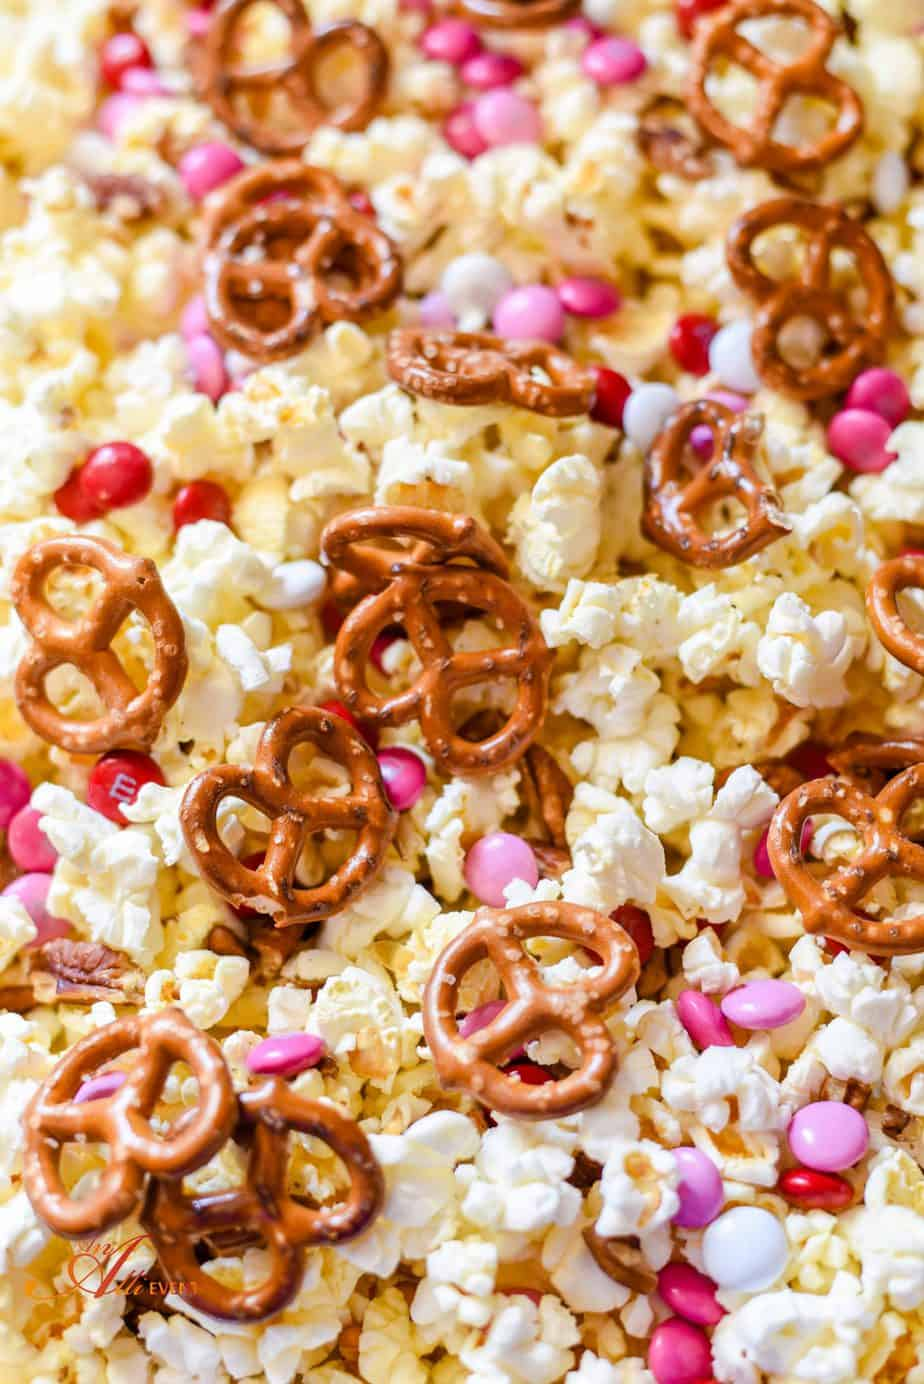 White Chocolate Covered Popcorn with Pecans and Pretzels - An Alli ...